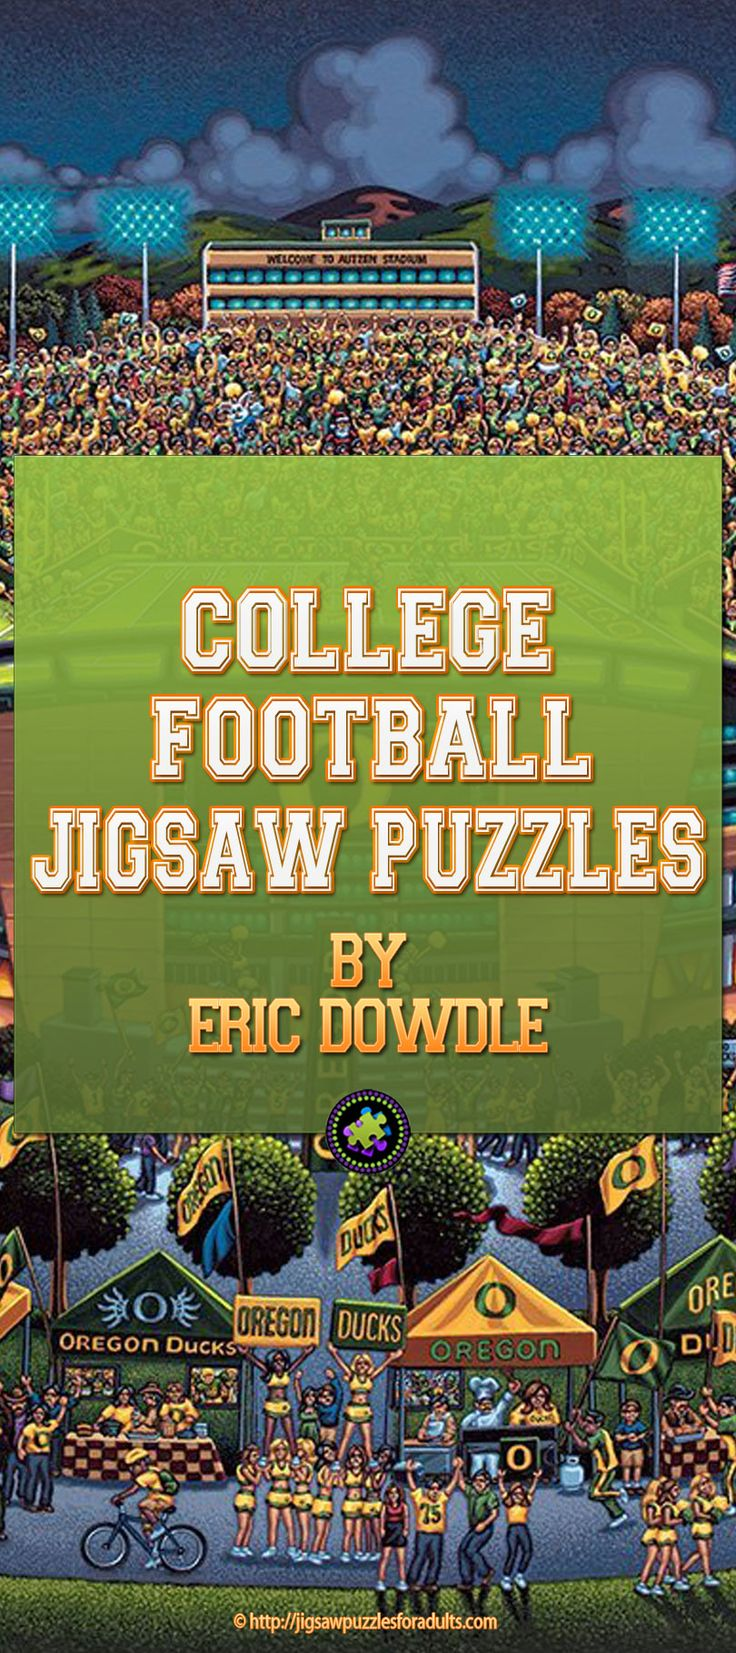 These College Football Jigsaw Puzzles by Eric Dowdle would make the BEST holiday gifts for anyone who loves football and can't get enough during the football season.Whether you are a College Football fan, or you just root for the home team, or you are a collector of College Sports memorabilia you won't want to miss these College Football Jigsaw puzzles.